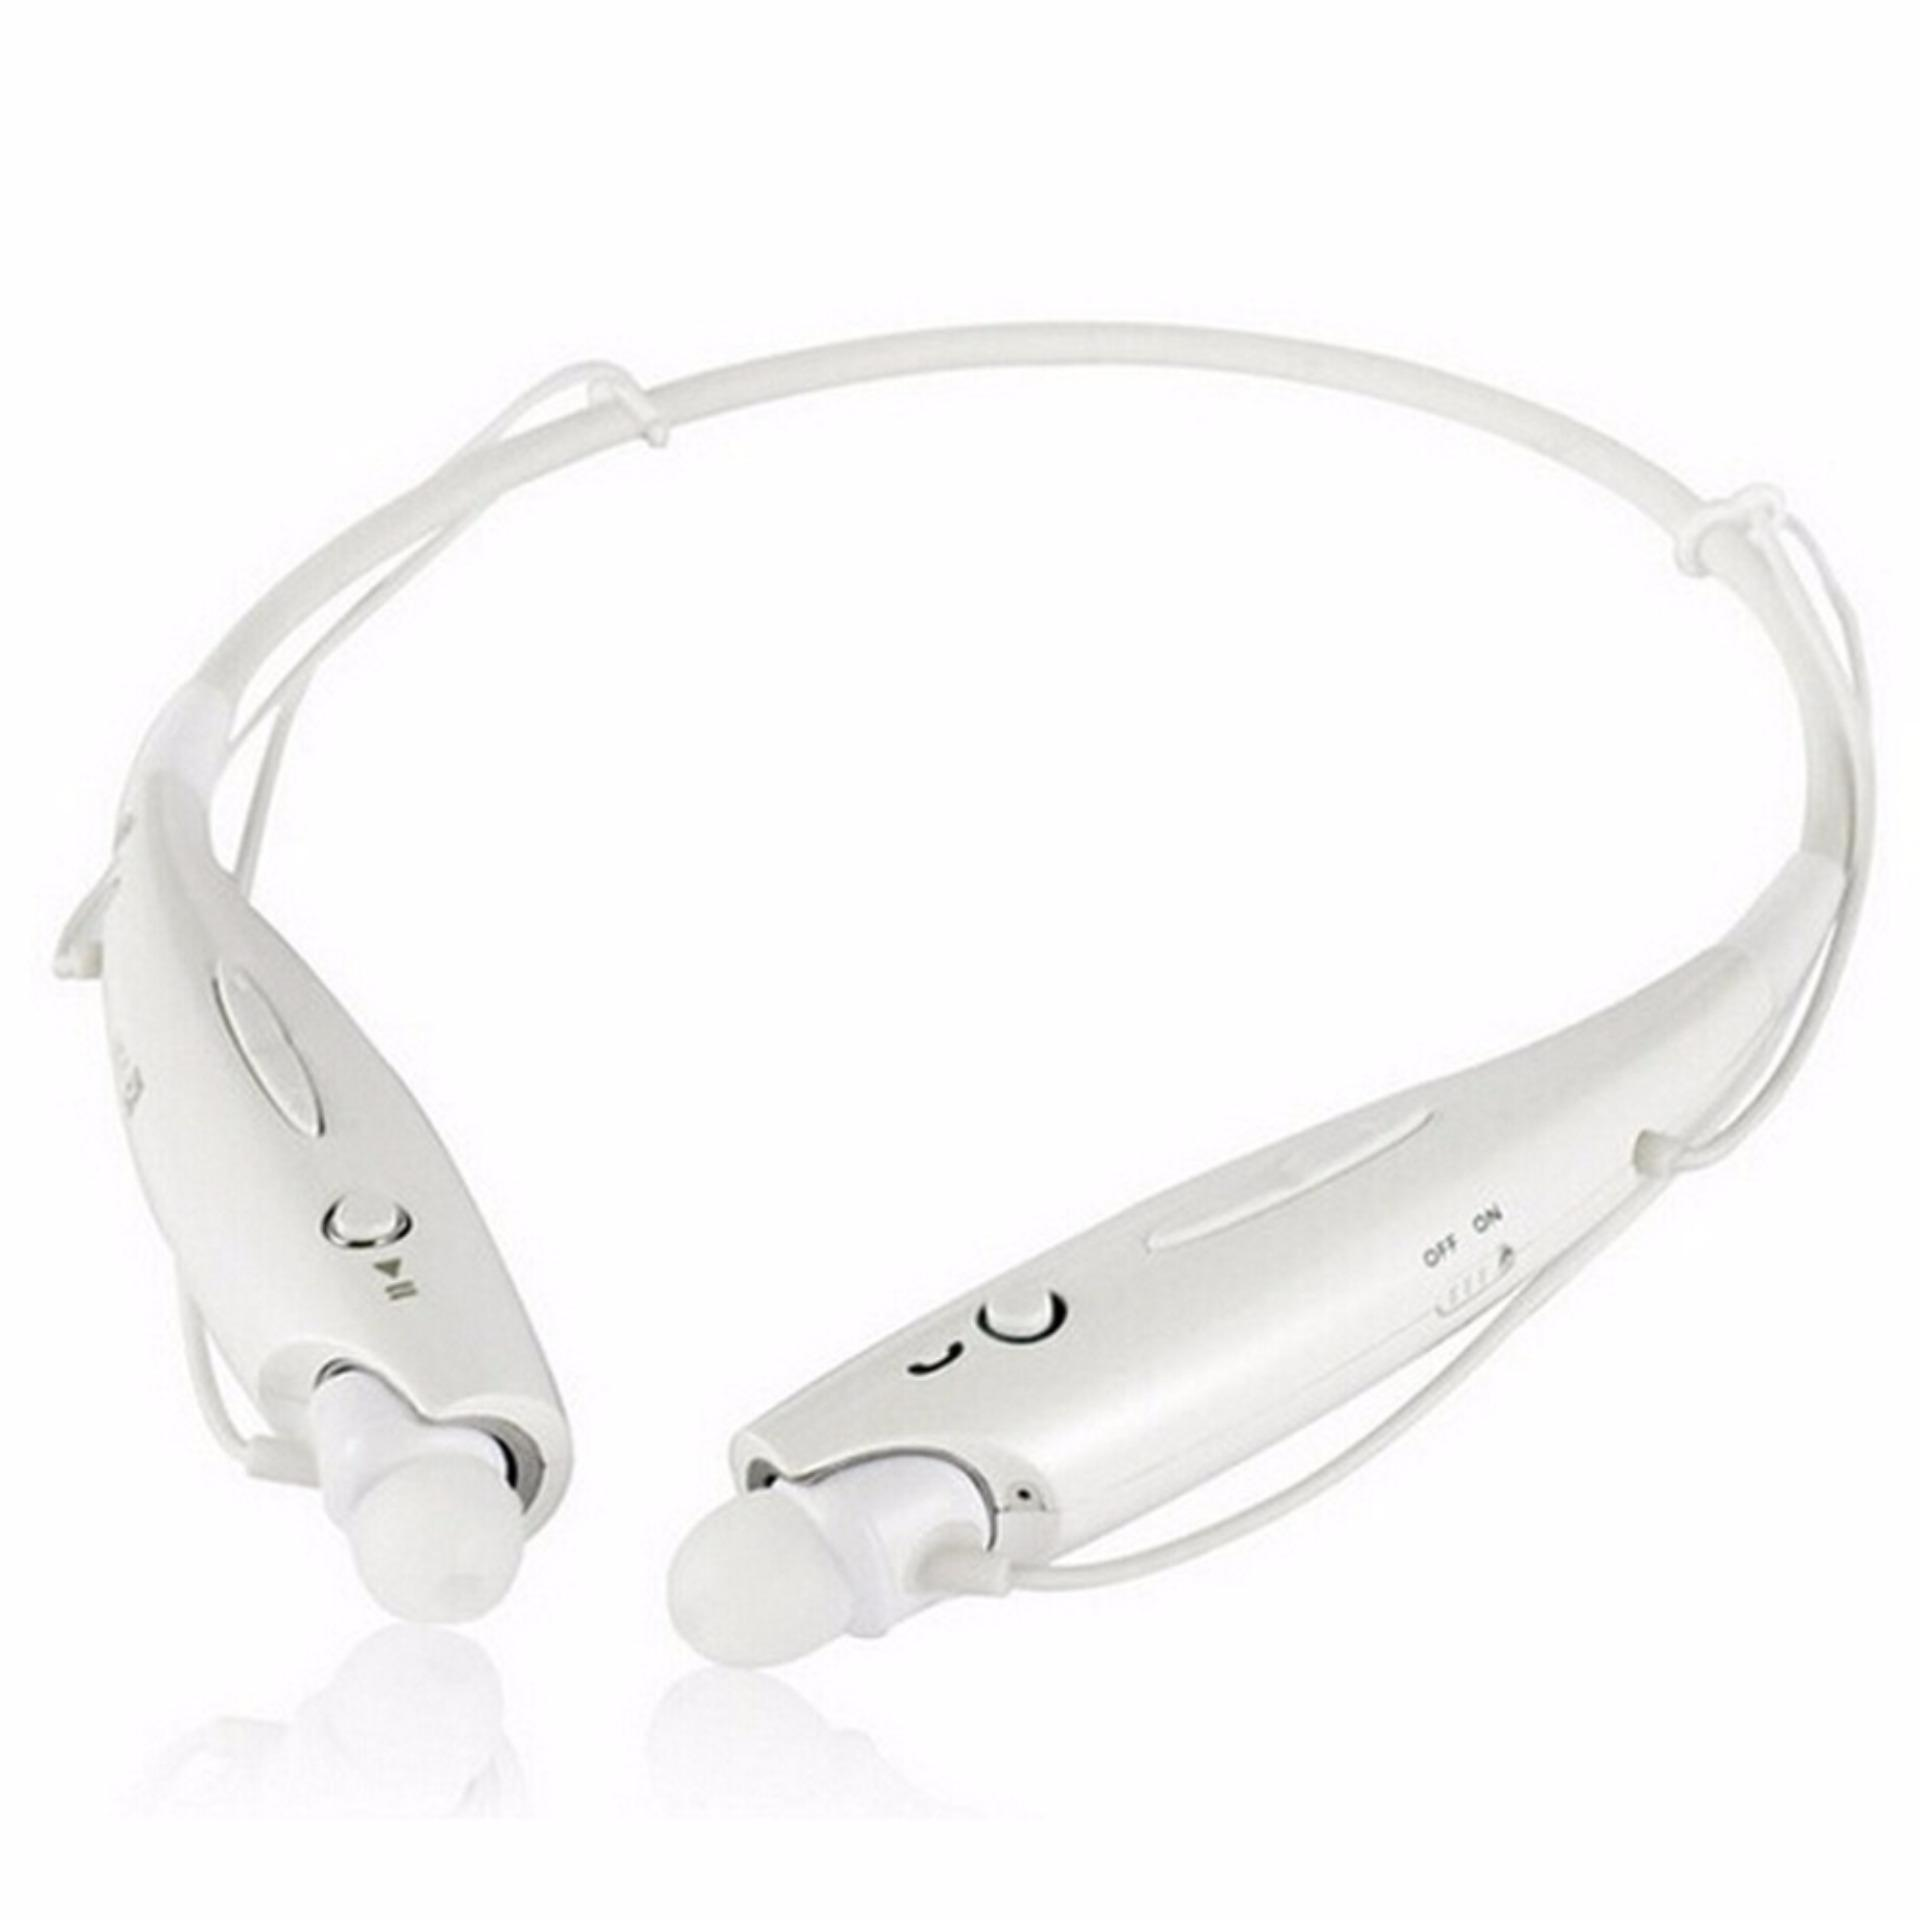 Samsung Bluetooth Headset Two Channel Mp3 Music Headphone Hbs 730 Diskon Jawa Tengah